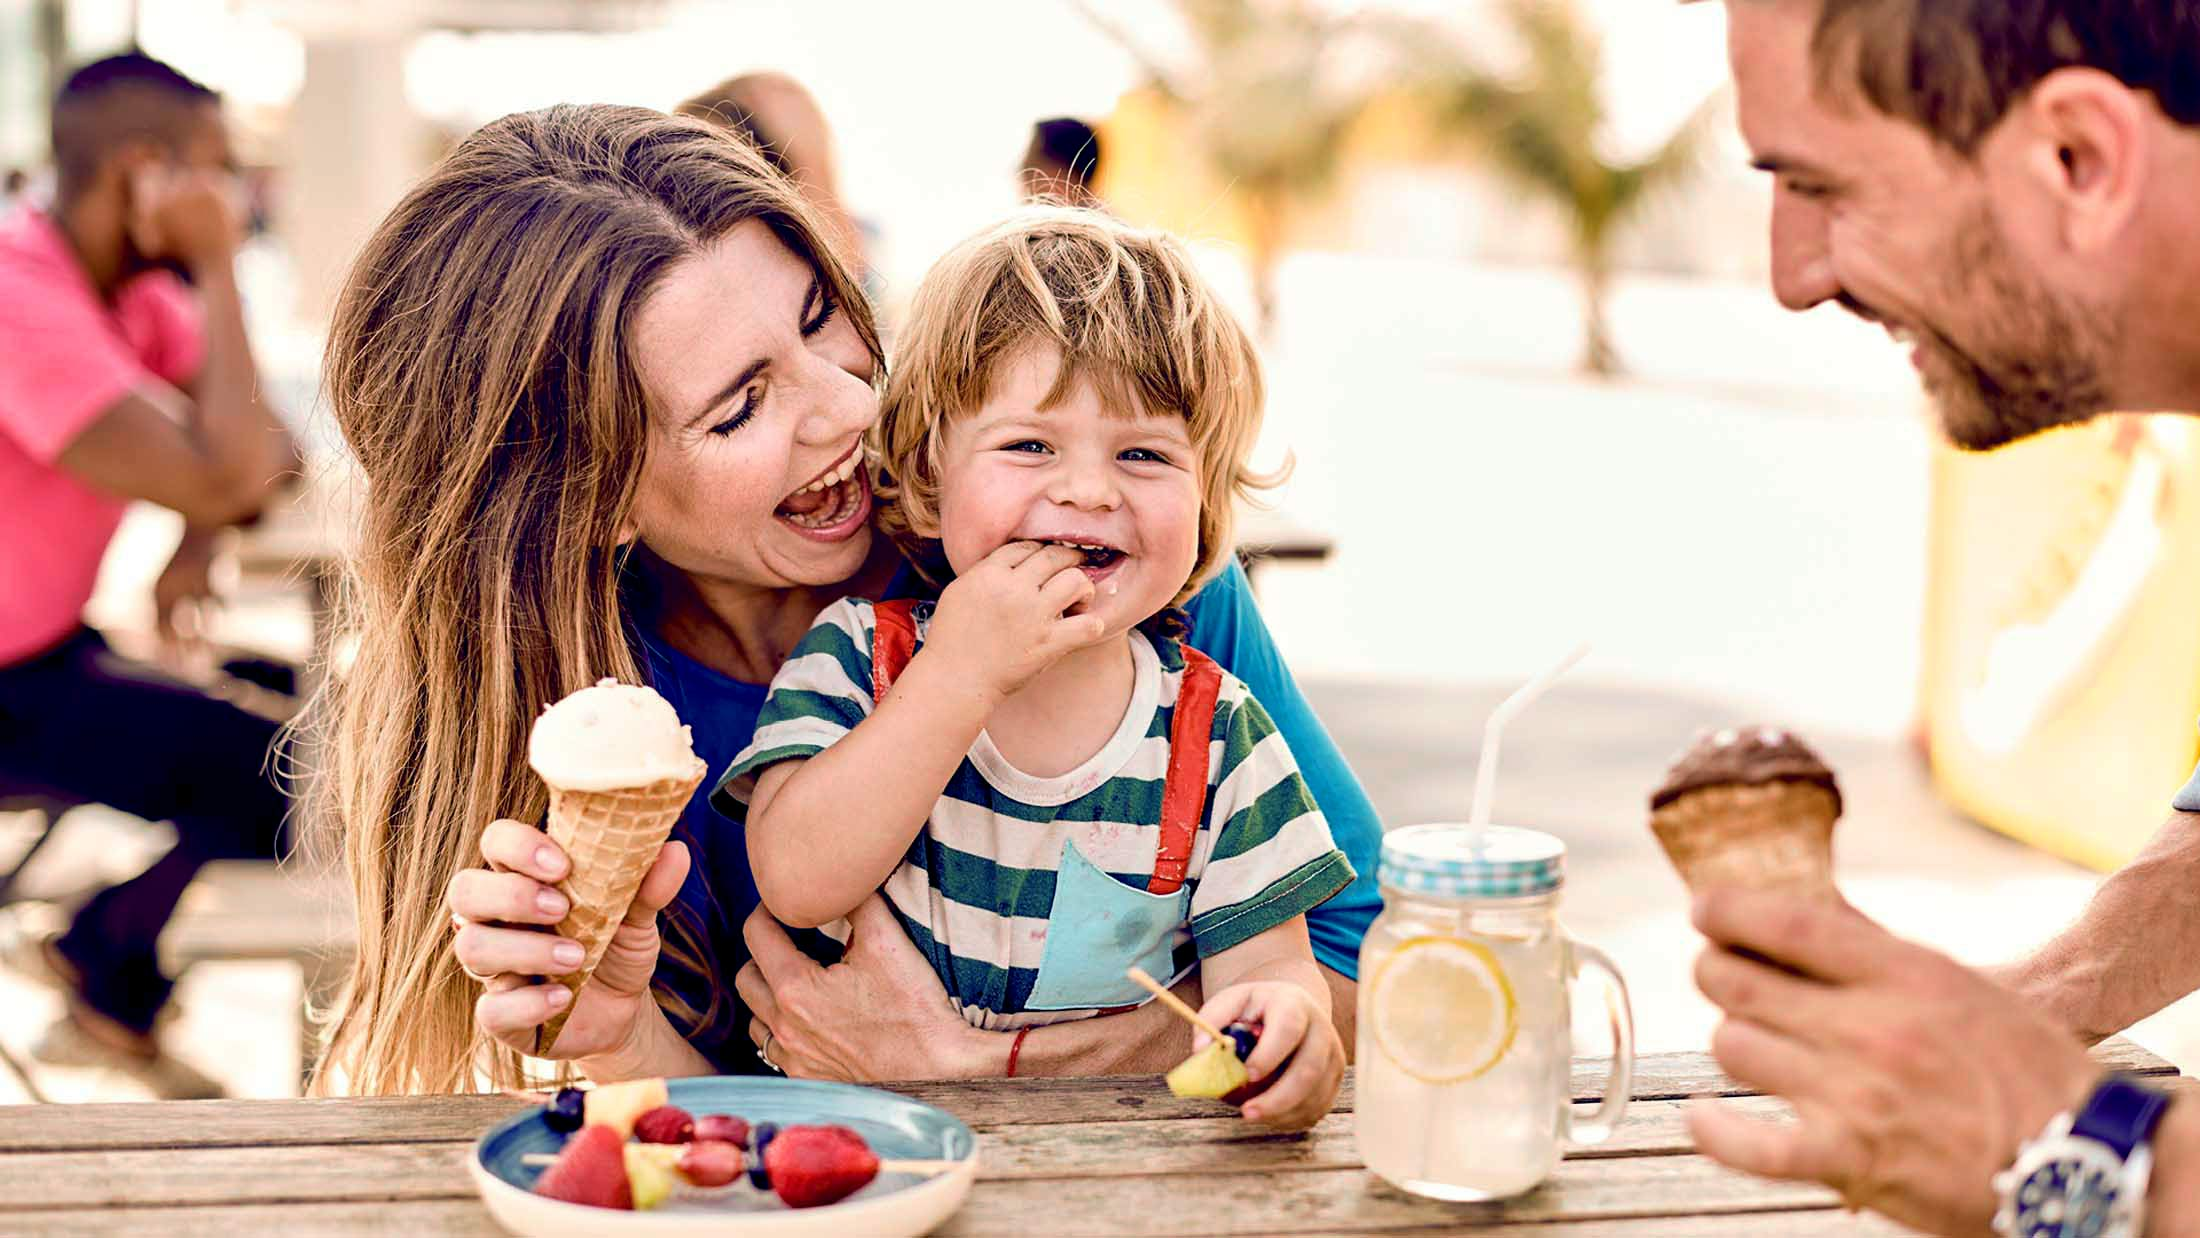 Enjoy some cool ice cream on your stop in Dubai.